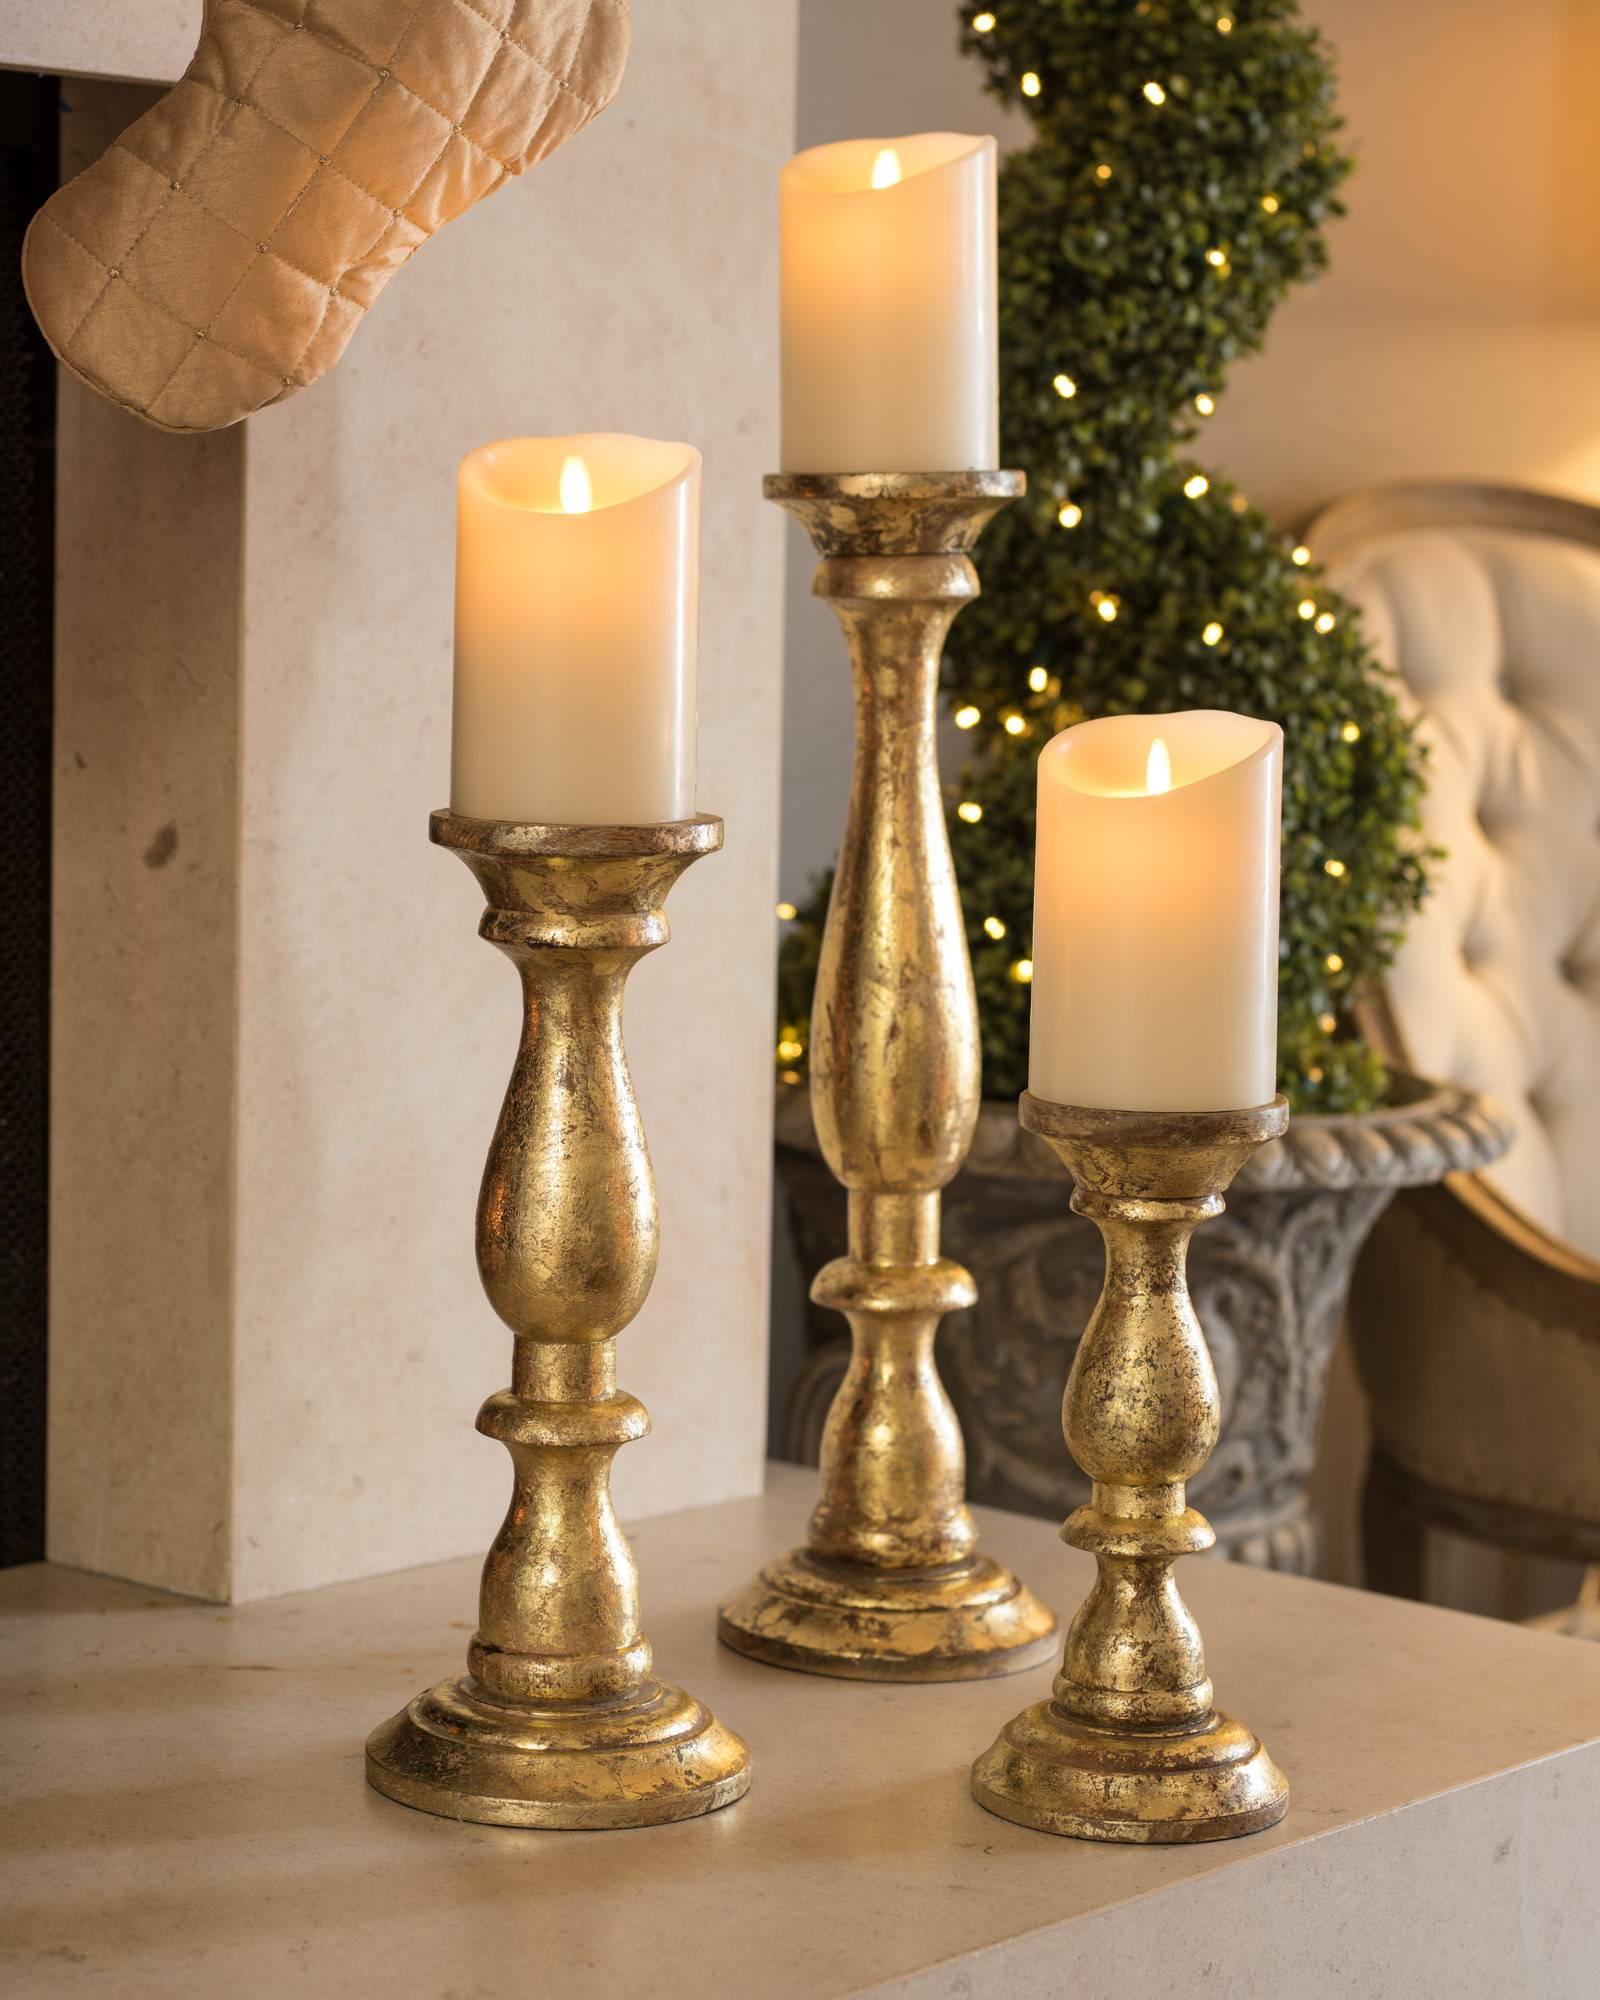 4000709_Gold-Wood-Pillar-Candle-Holders-Set-of-3_SSC-10